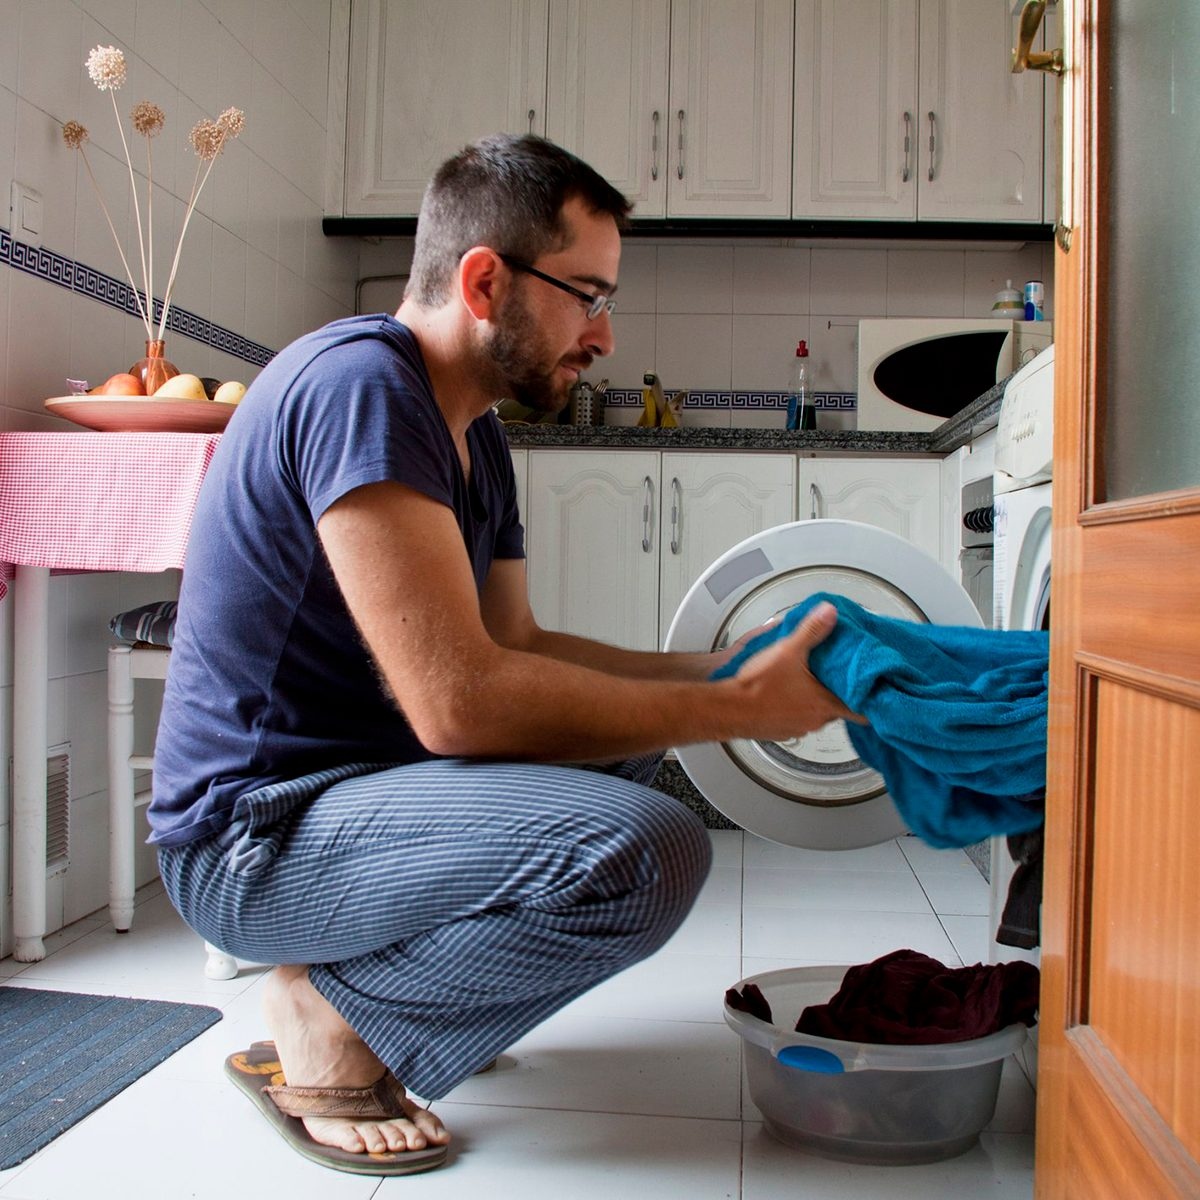 Man kneeling down and pulling laundry out of the machine